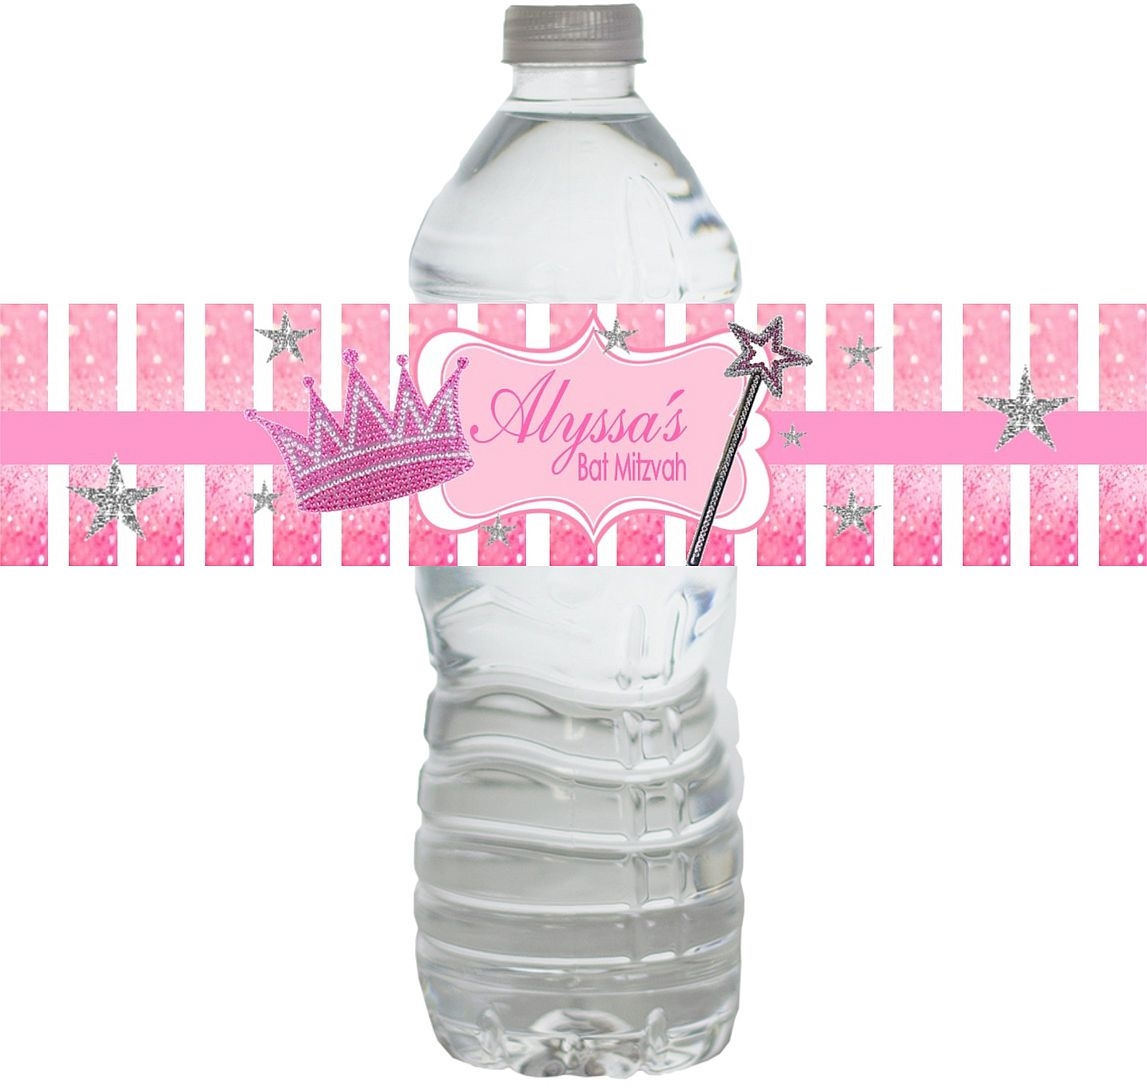 Princess Bat Mitzvah Waterproof Water Bottle Labels Larger Photo